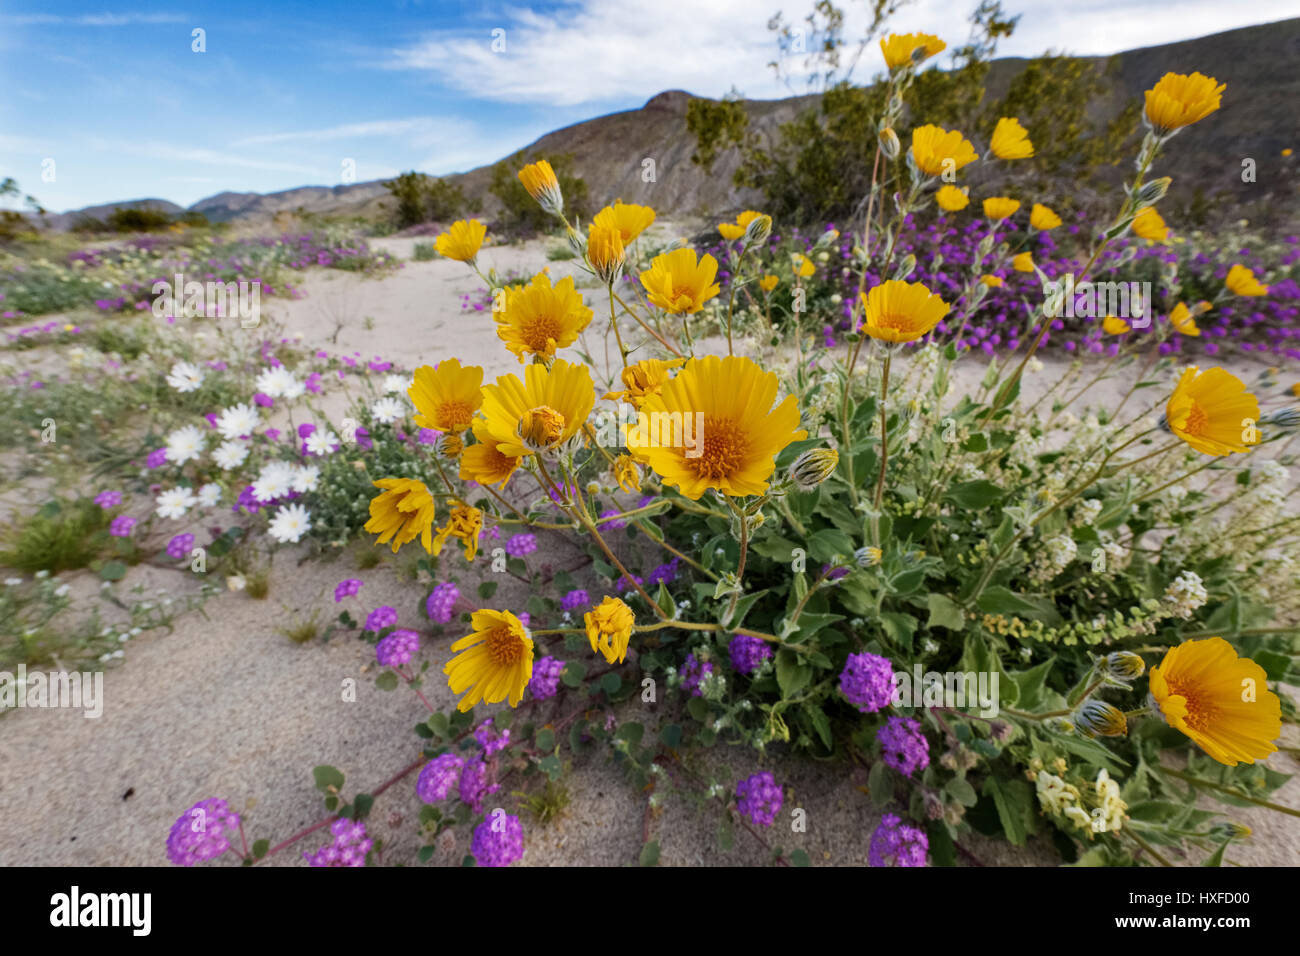 Spring flowers blooming in Anza-Borrego Desert State Park, California, USA 2017 - Stock Image